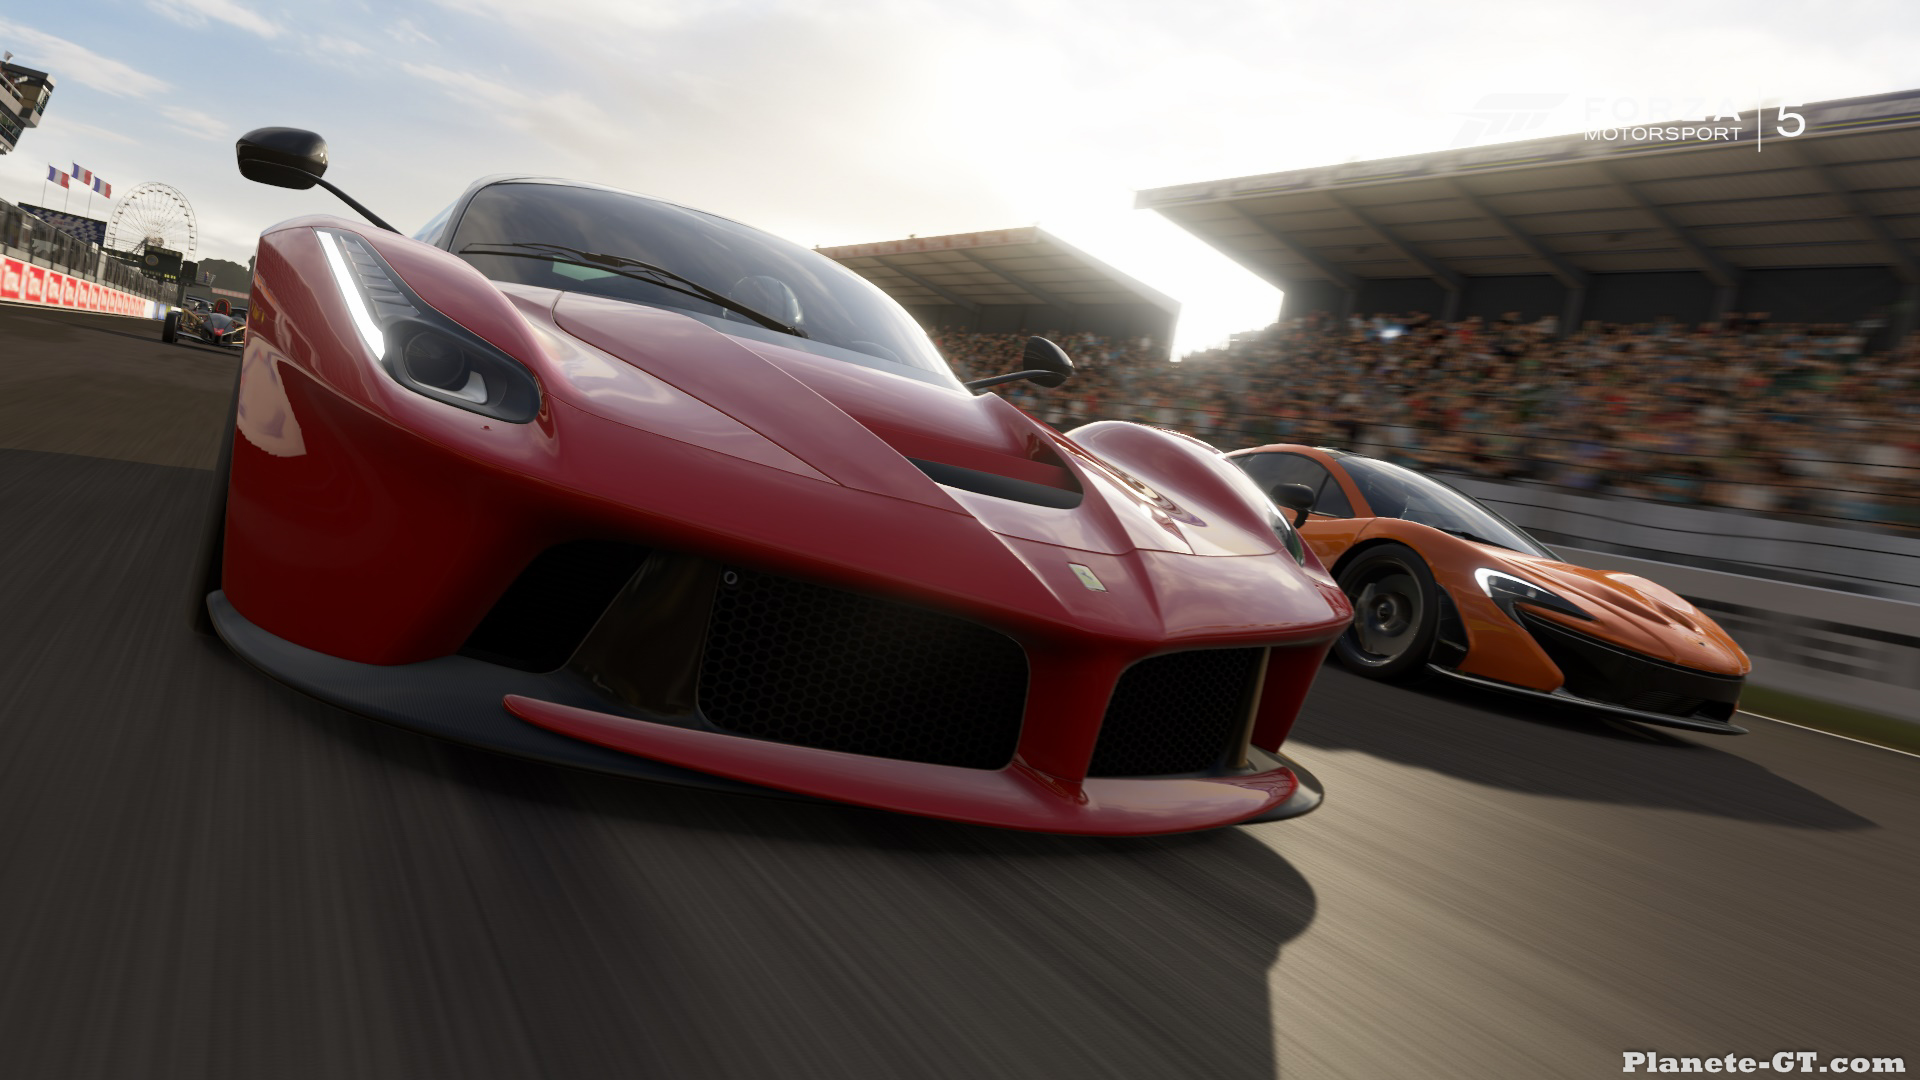 Car Wallpapers 3840x1200 Laferrari Vs P1 Full Hd Wallpaper And Background Image